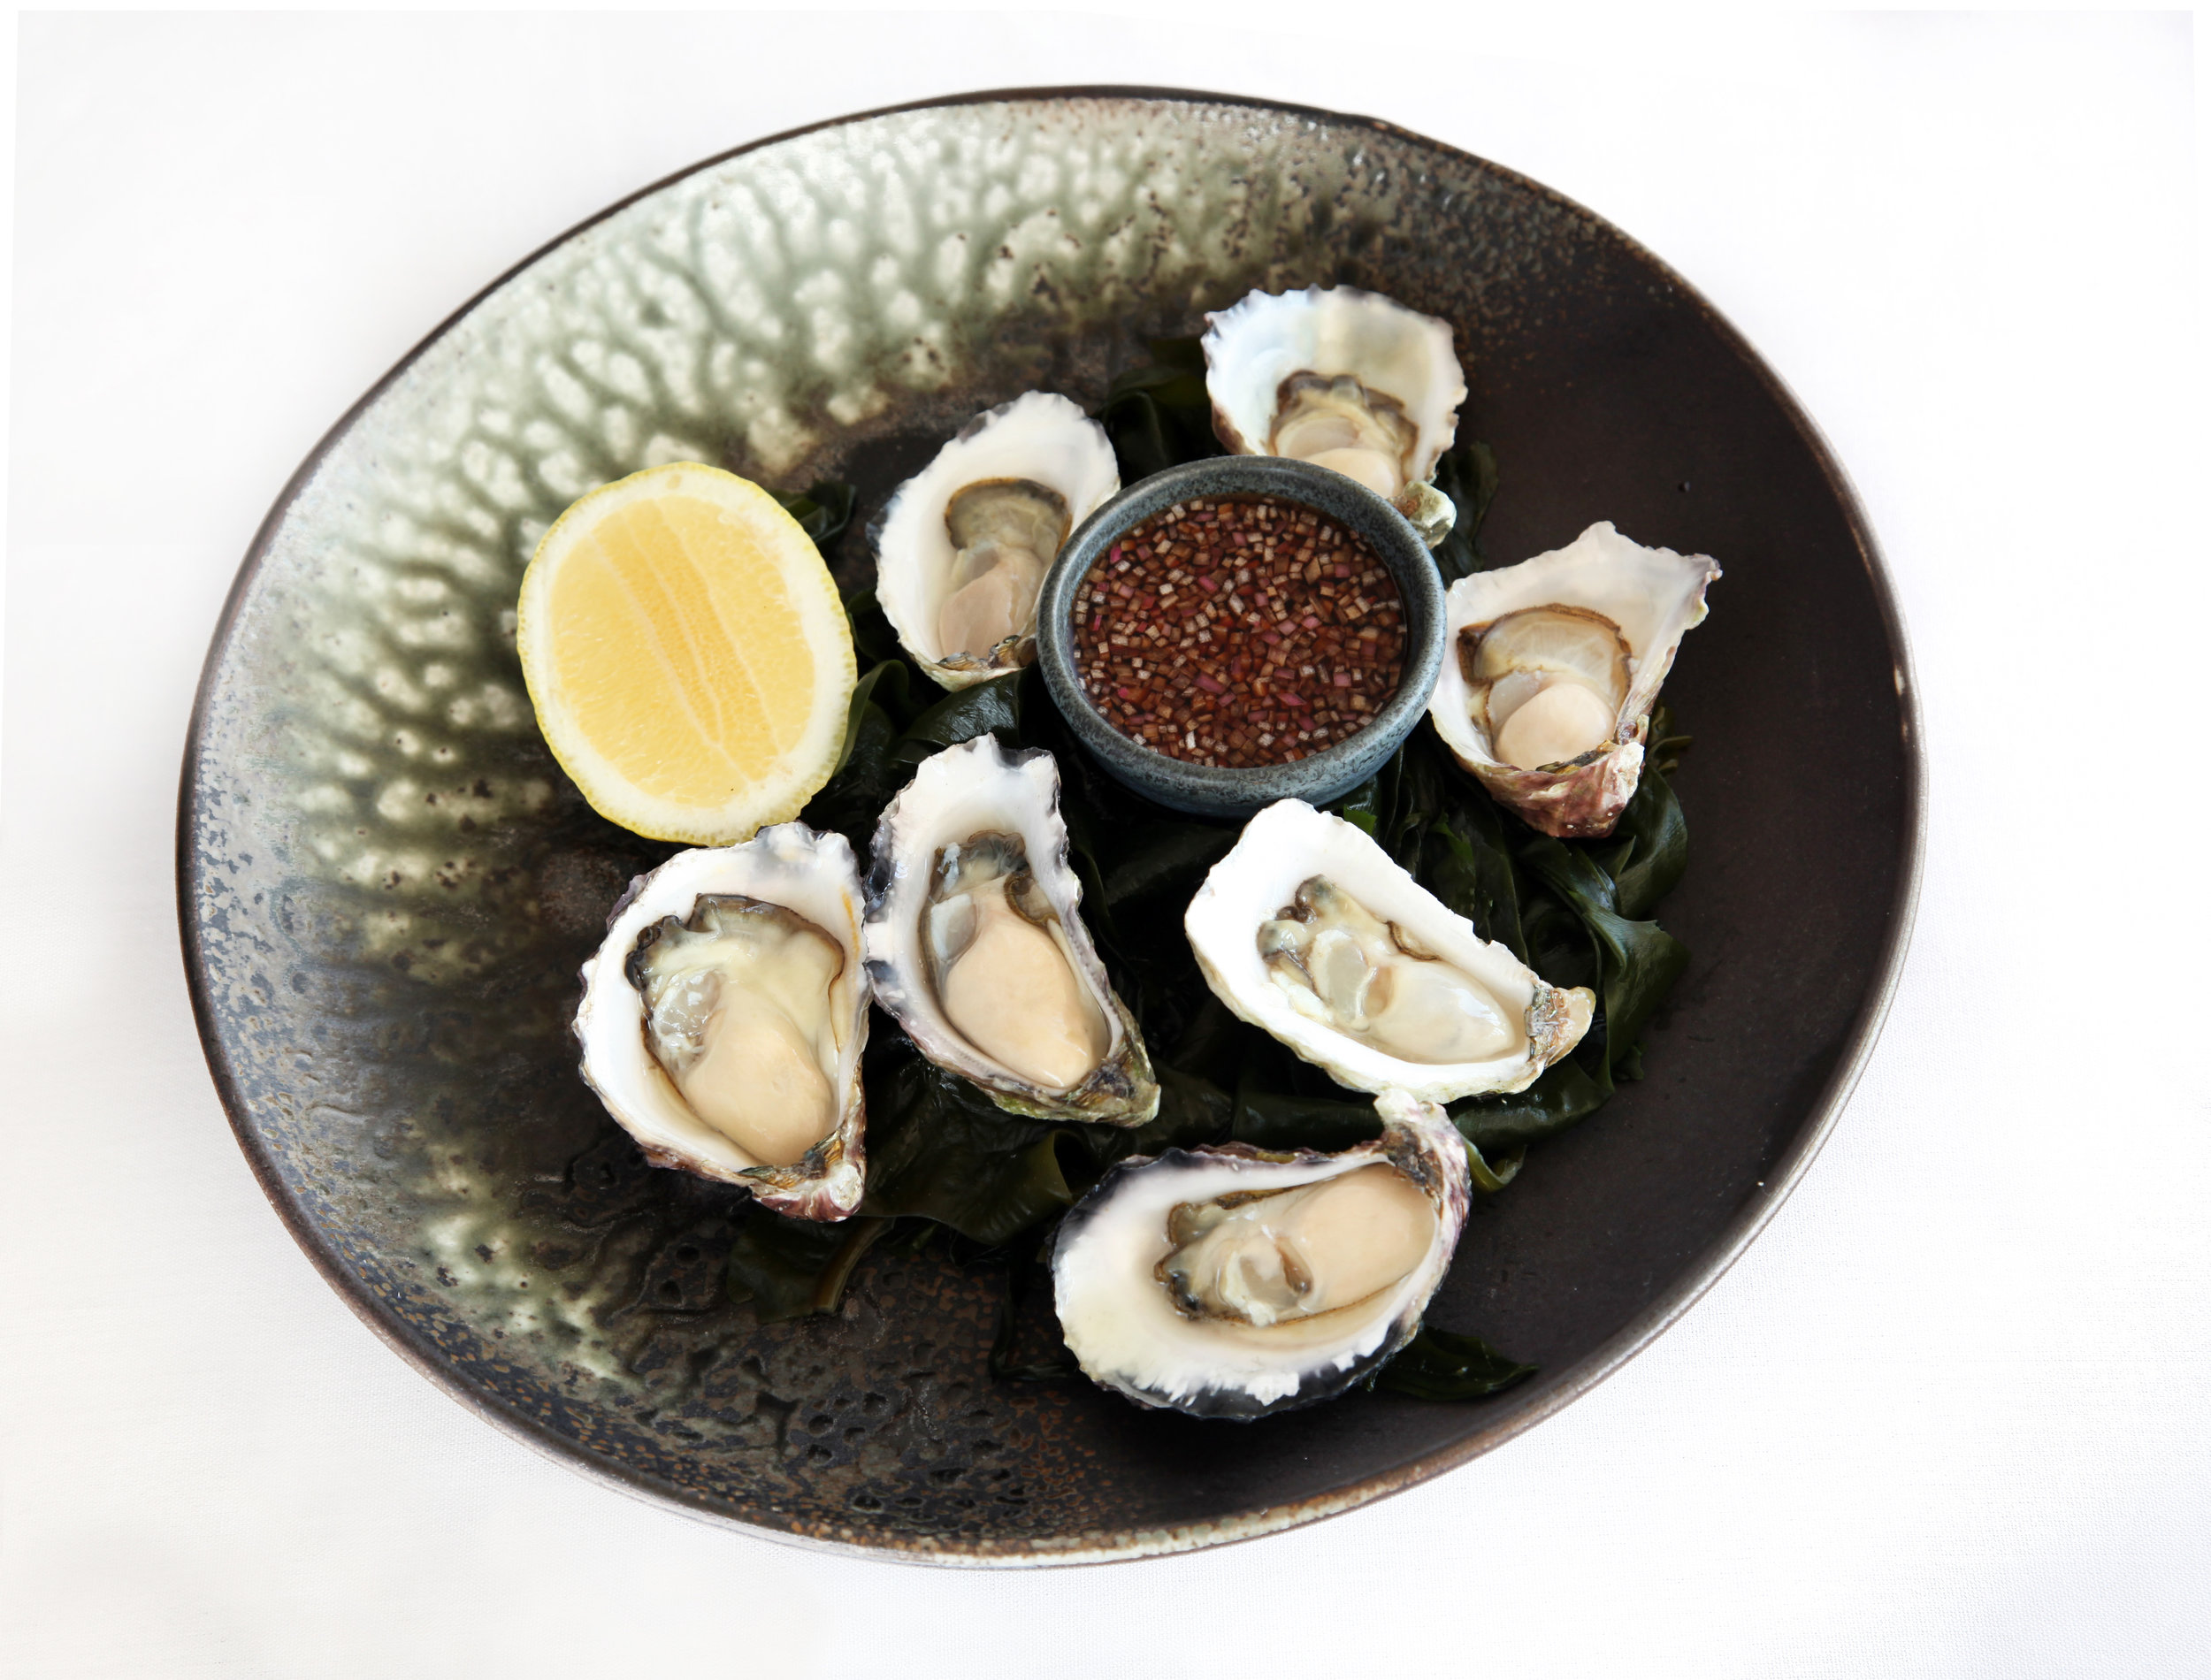 Oysters with mignonette dressing